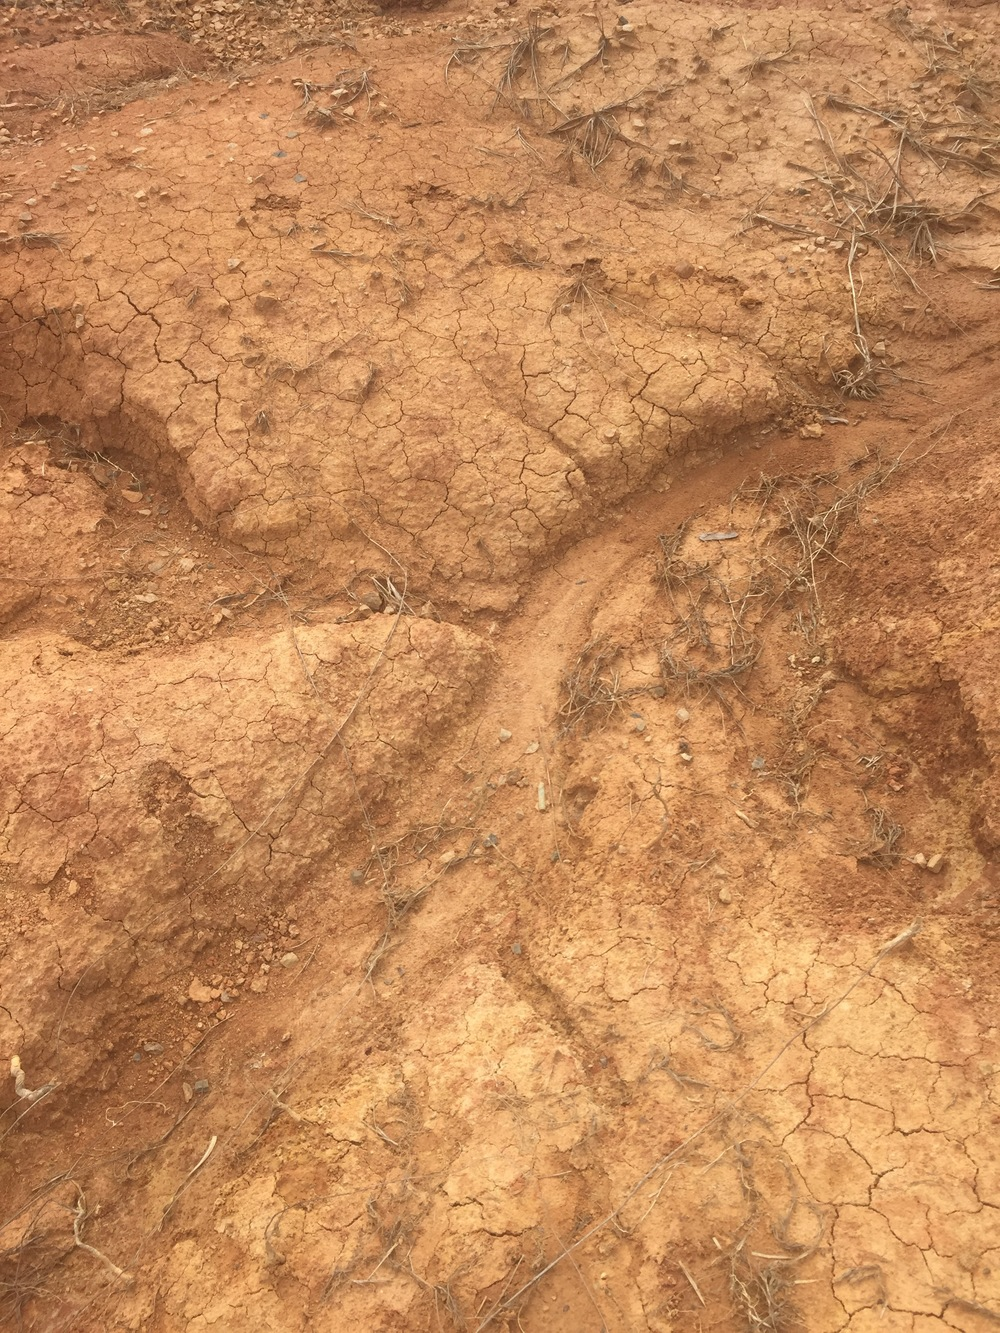 Durham's Triassic Basin Soil